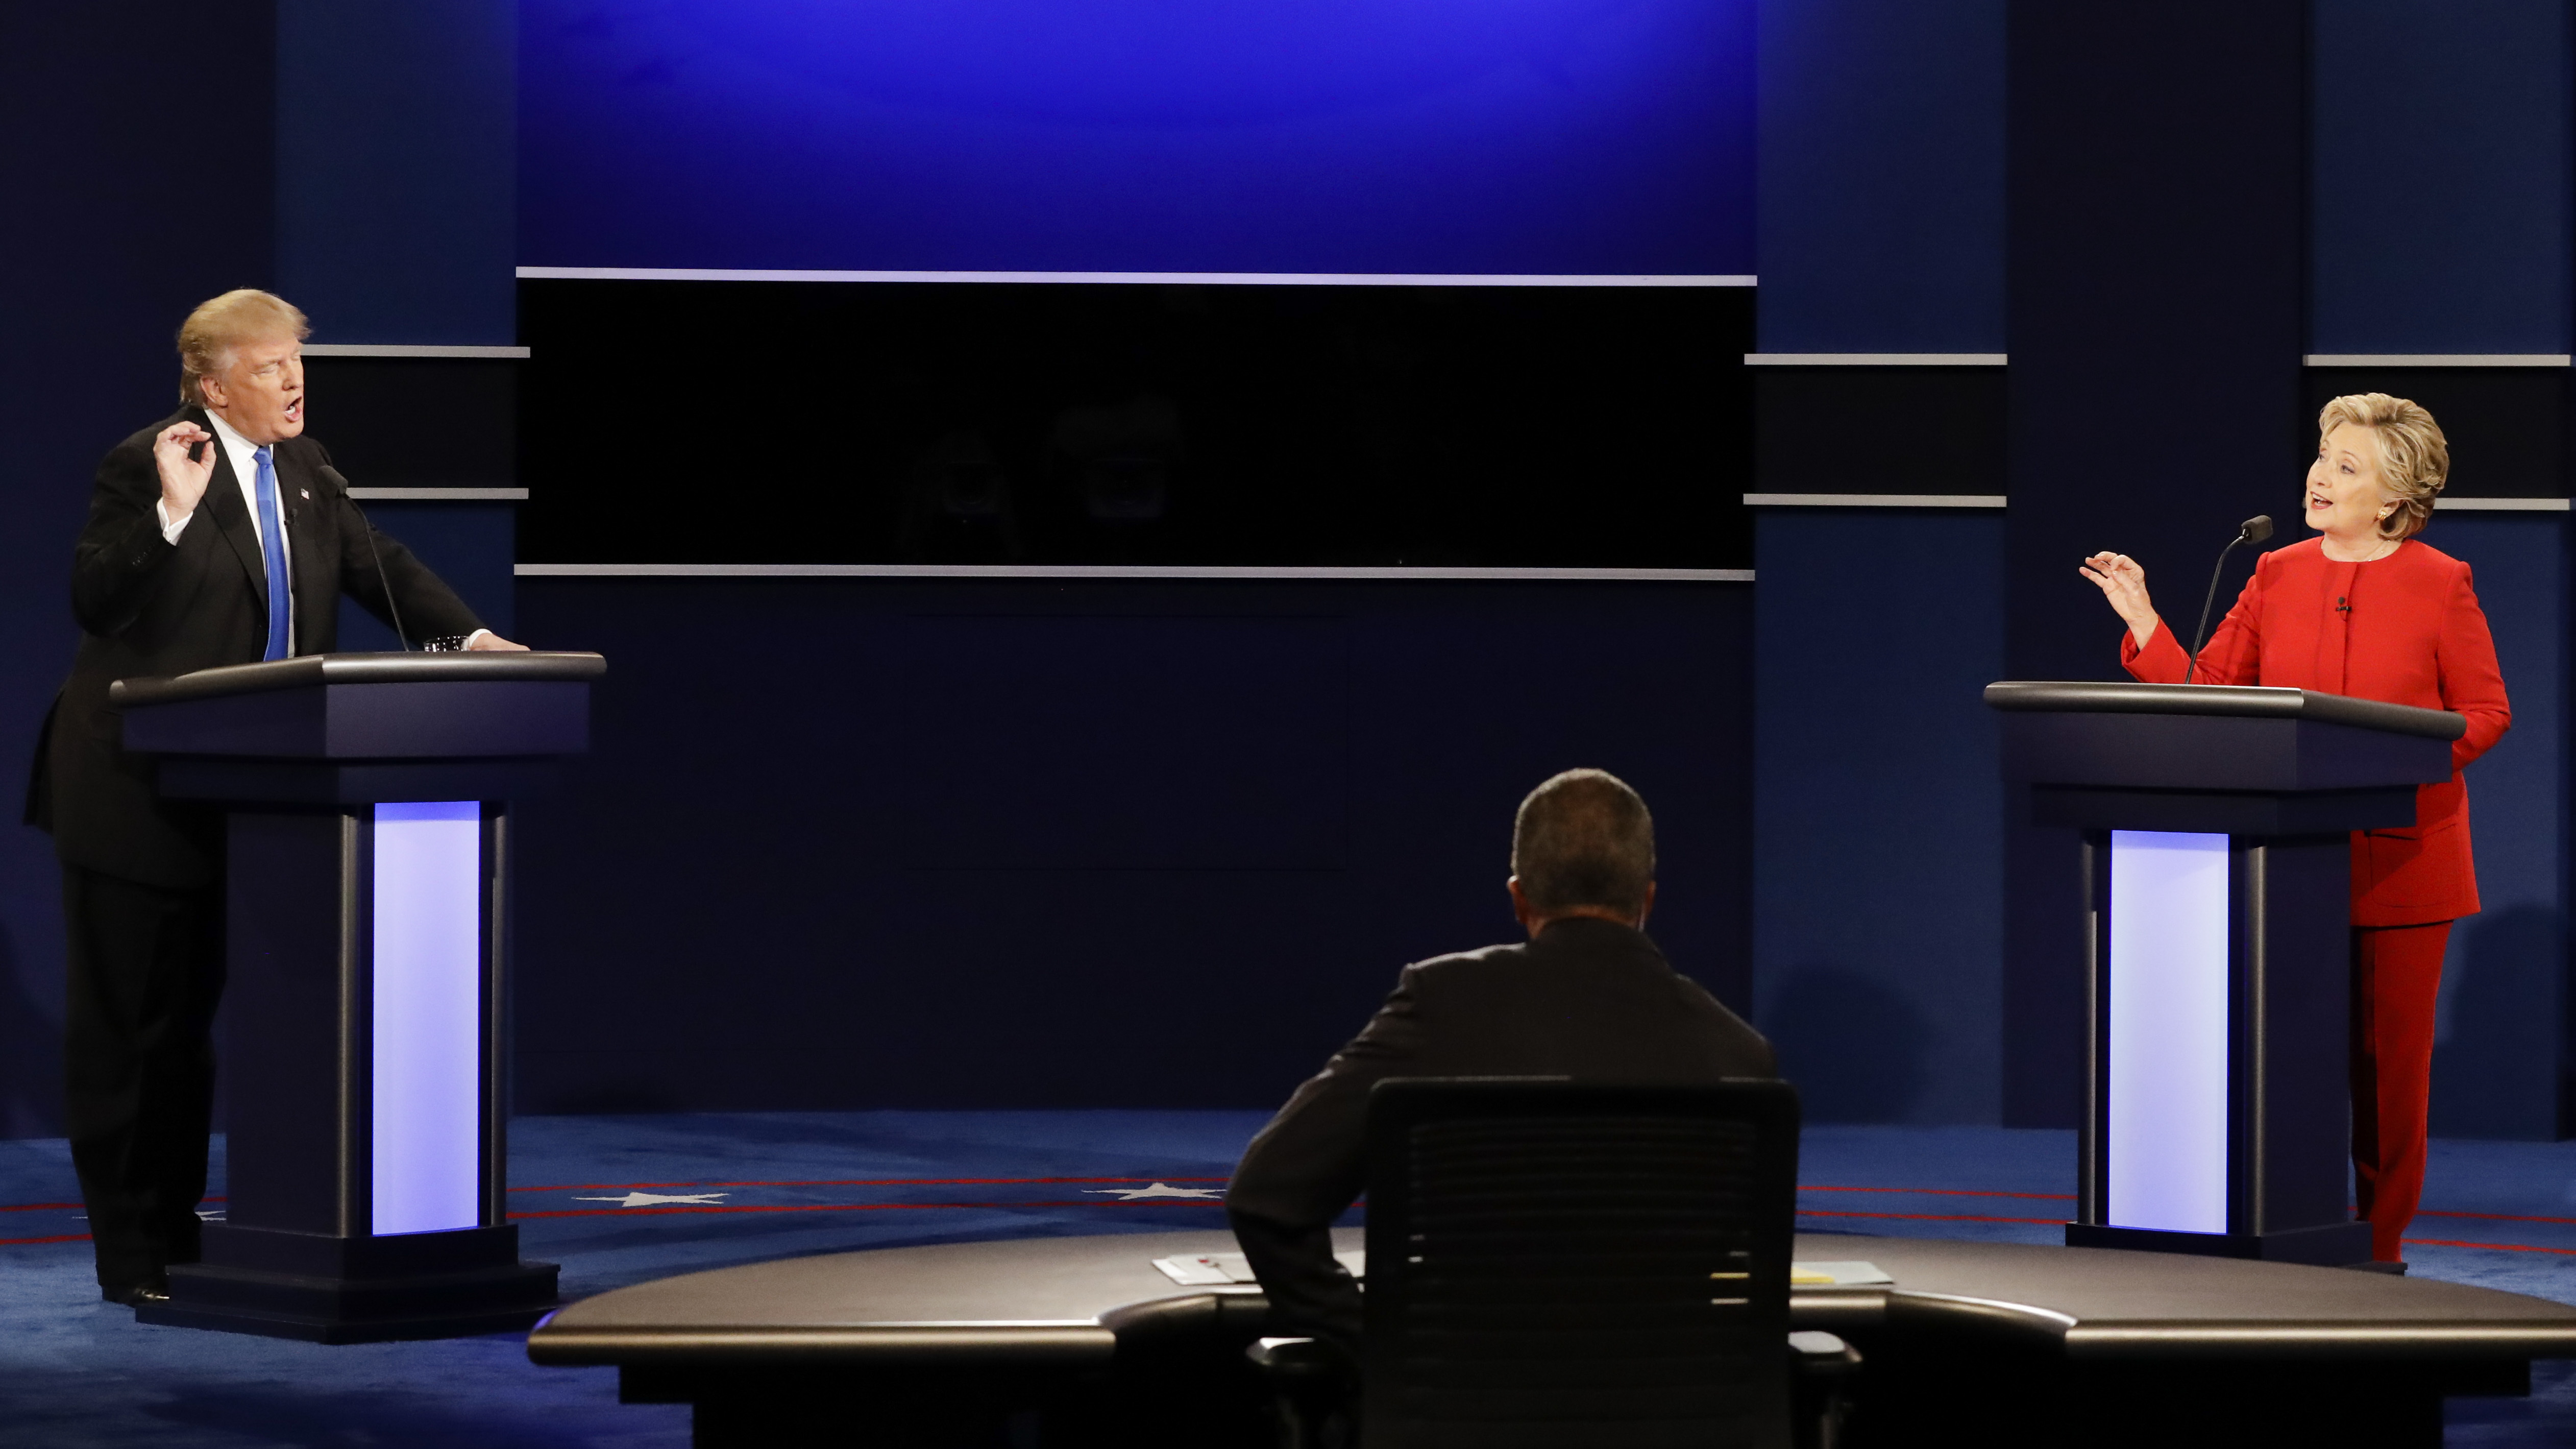 Republican presidential nominee Donald Trump and Democratic presidential nominee Hillary Clinton spar during the first presidential debate of 2016. (Photo by David Goldman/Associated Press)